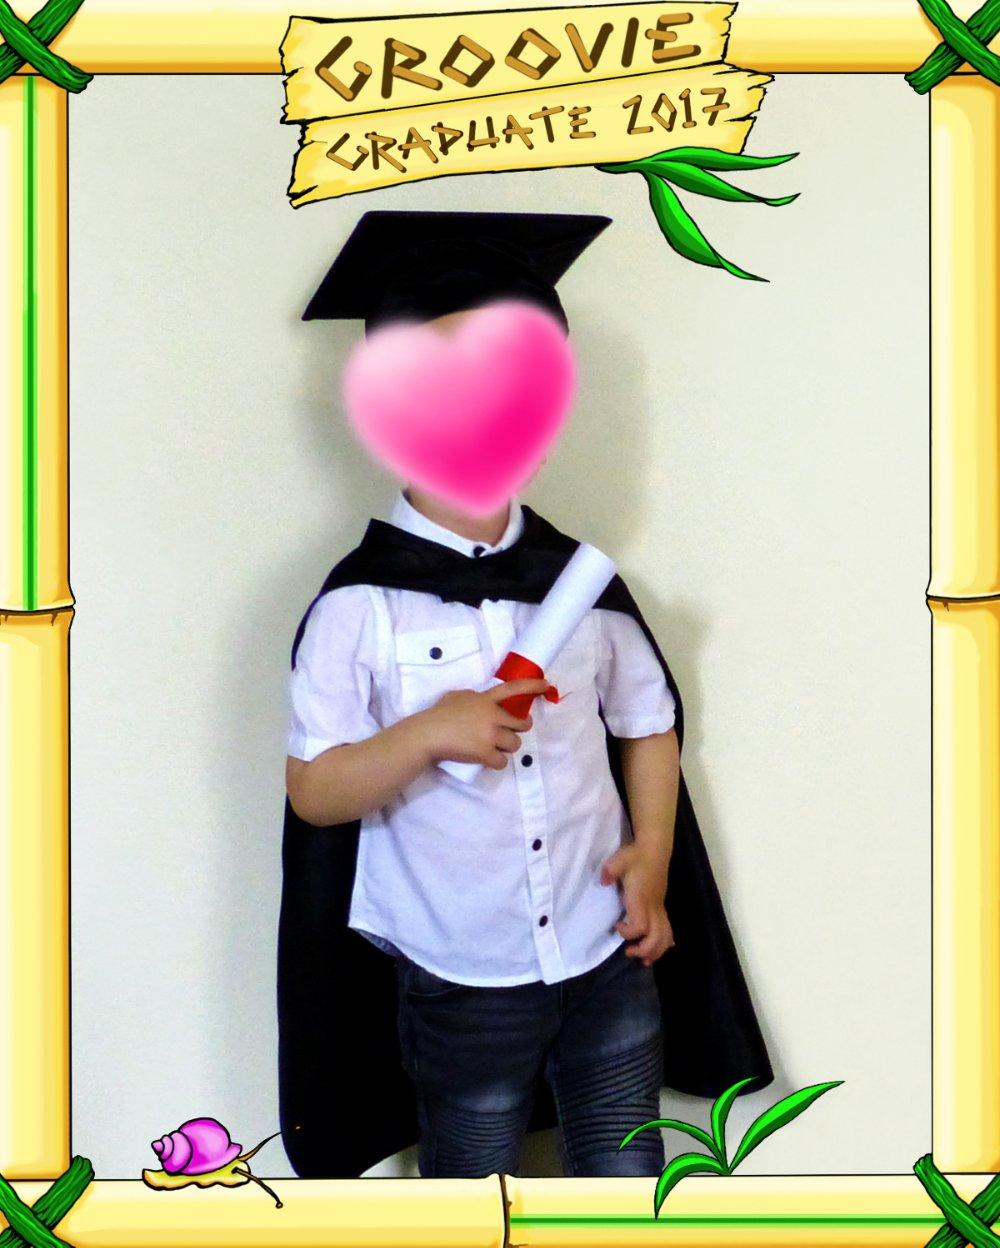 Toddler graduation photo (face hidden) in a digital art bamboo frame to match the childcare setting.